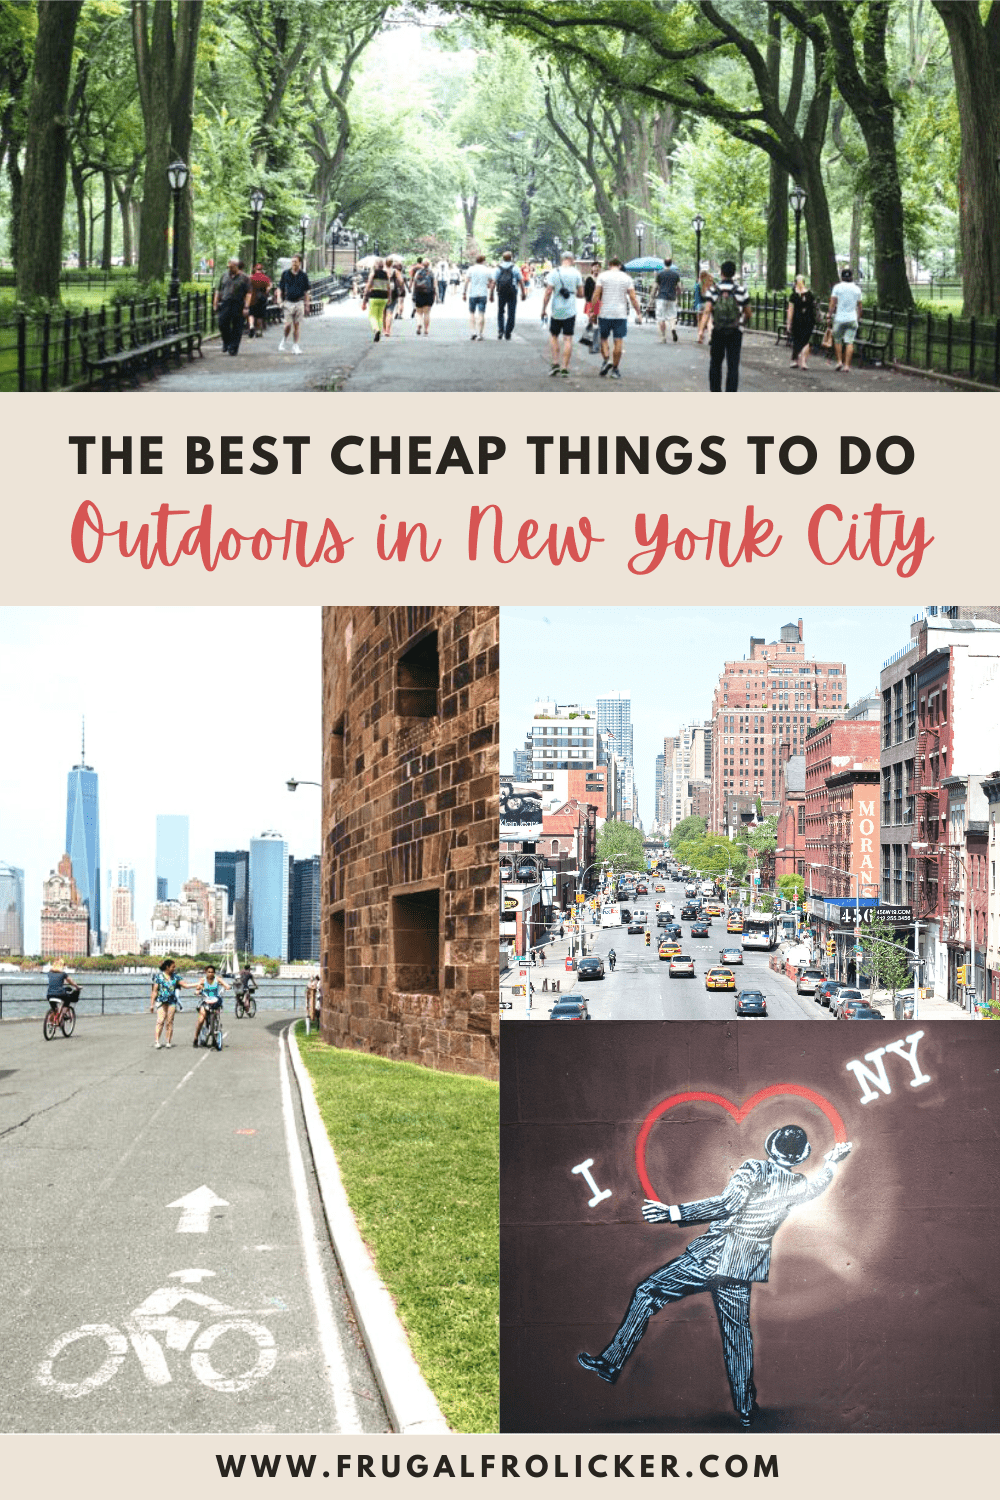 Cheap Things To Do In NYC That Are Outdoors